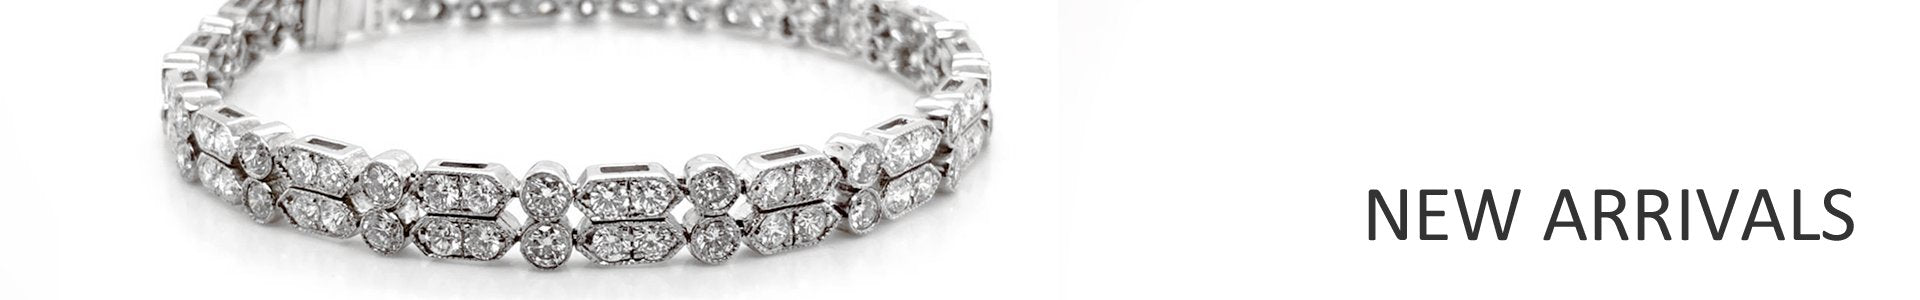 New Arrivals - Platinum Diamond Jewelry